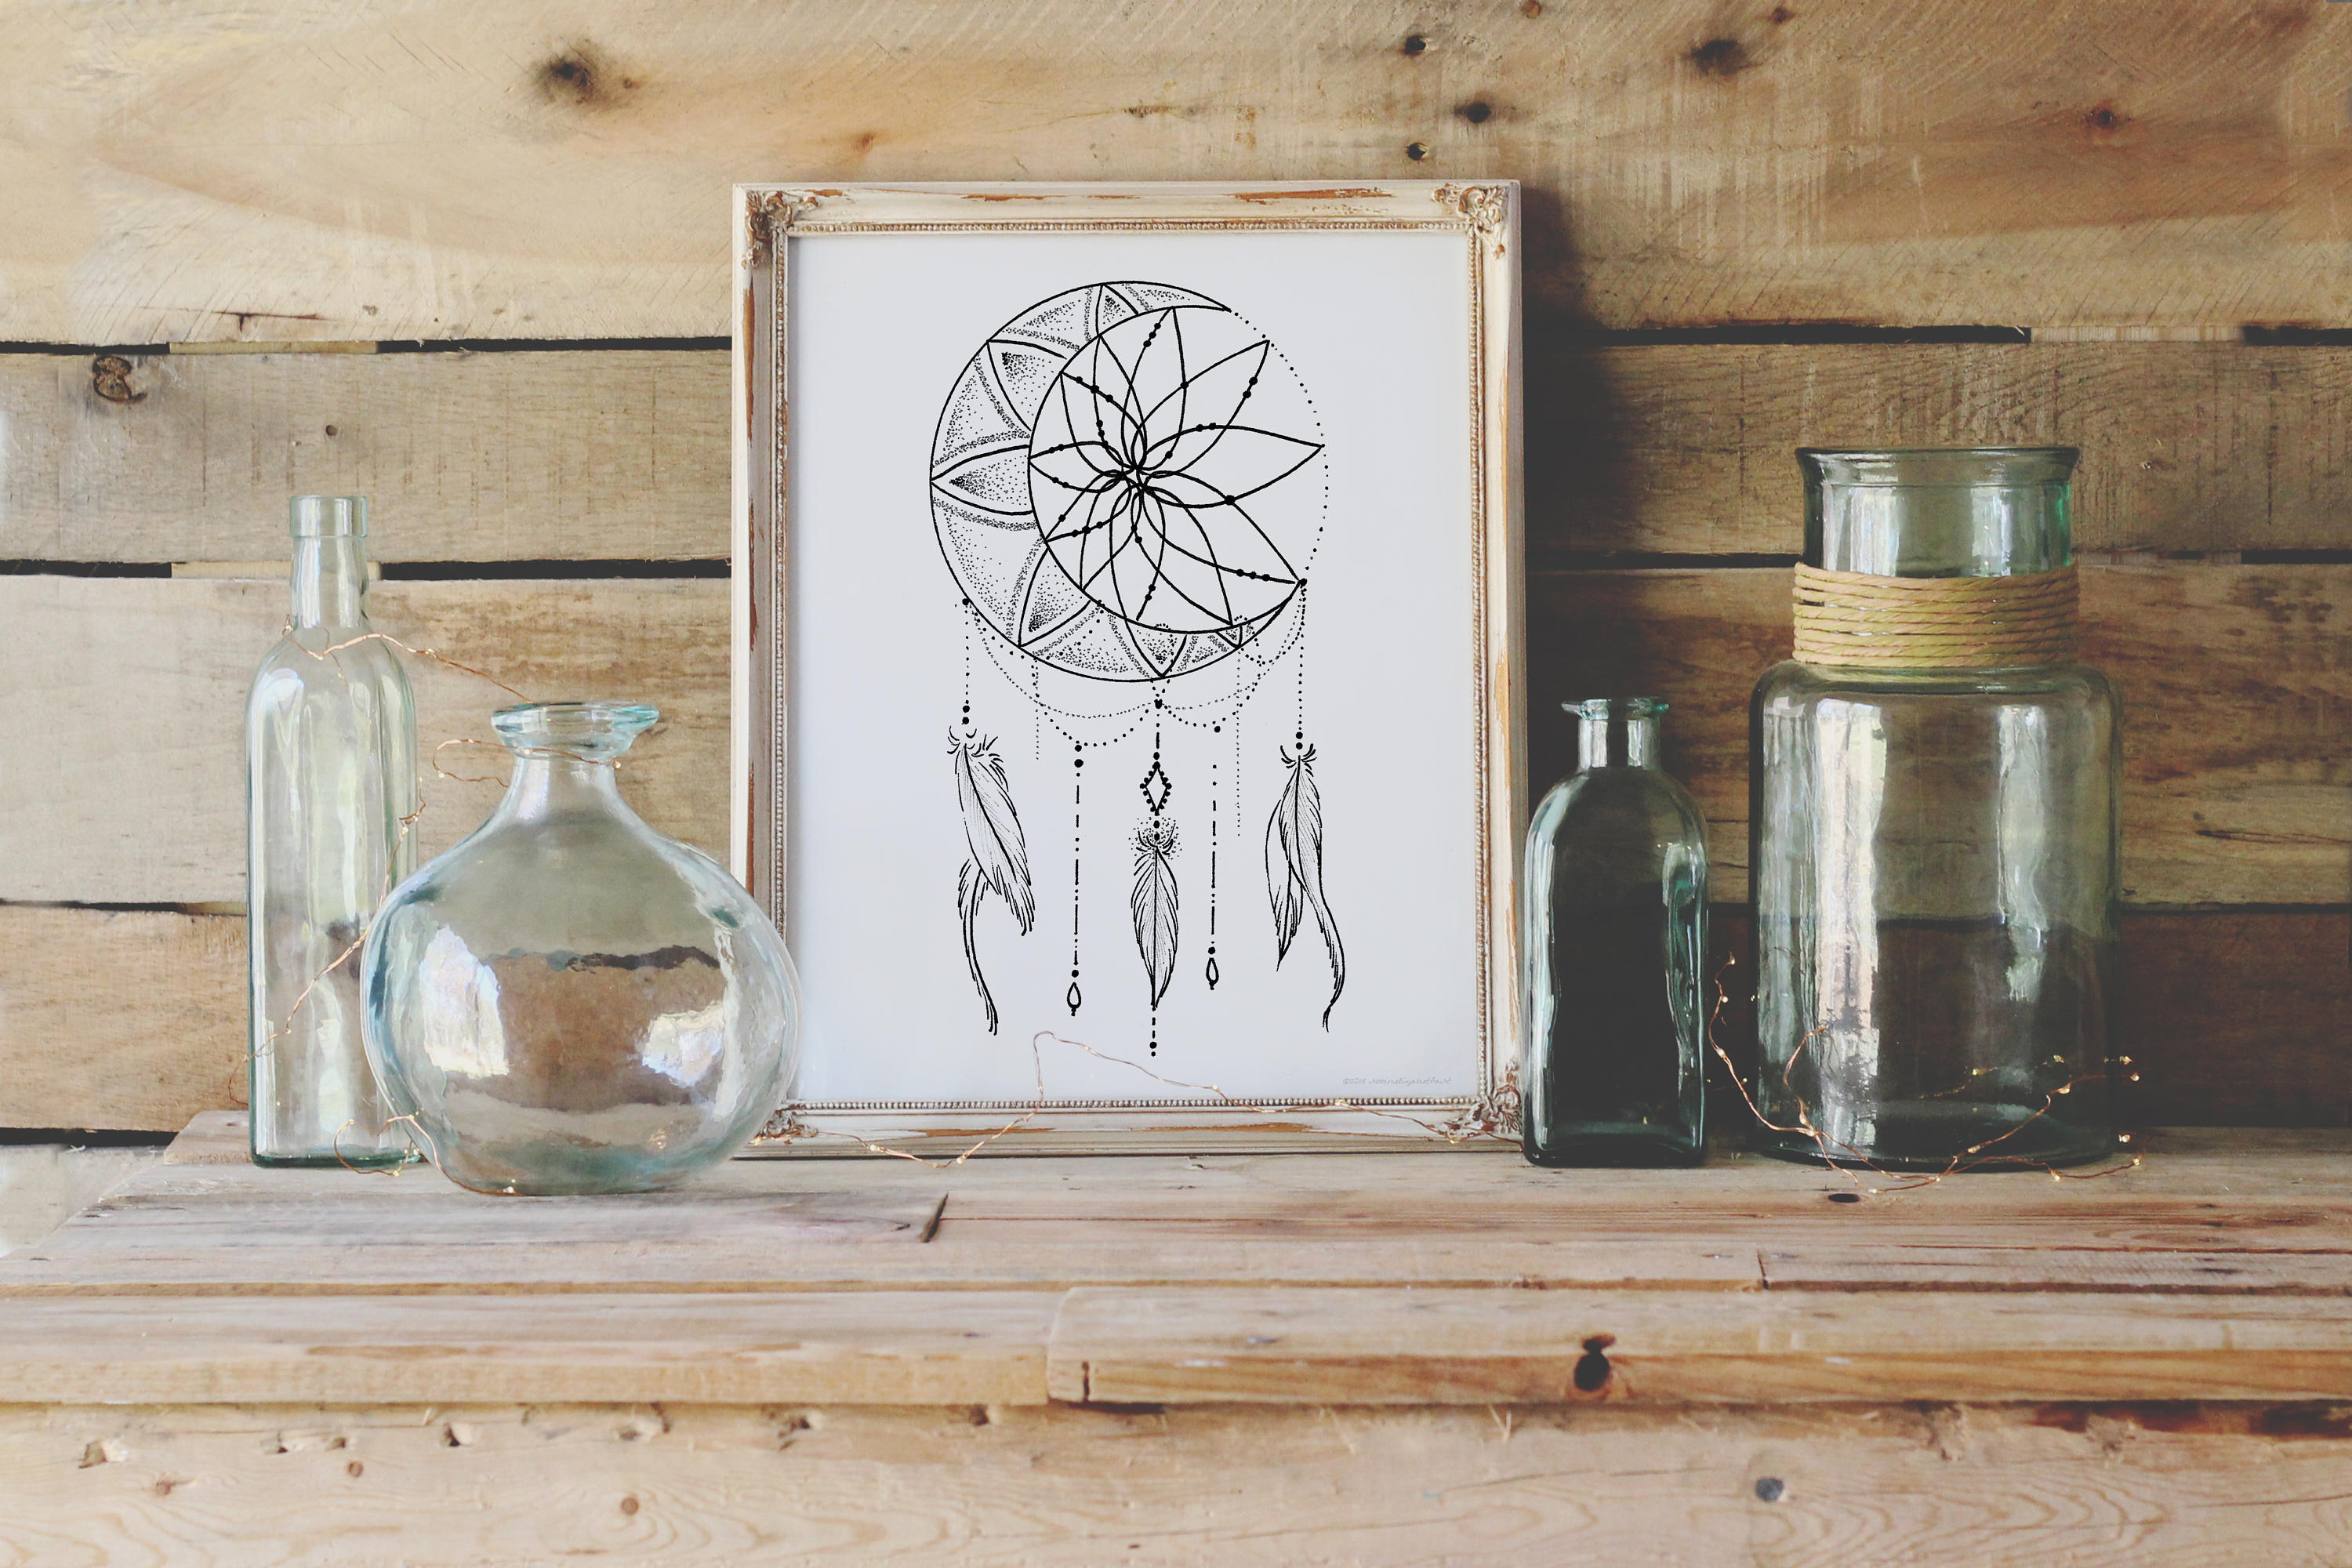 moon dream catcher coloring page instant download print your own coloring pages adult coloring book - Print Your Own Coloring Book